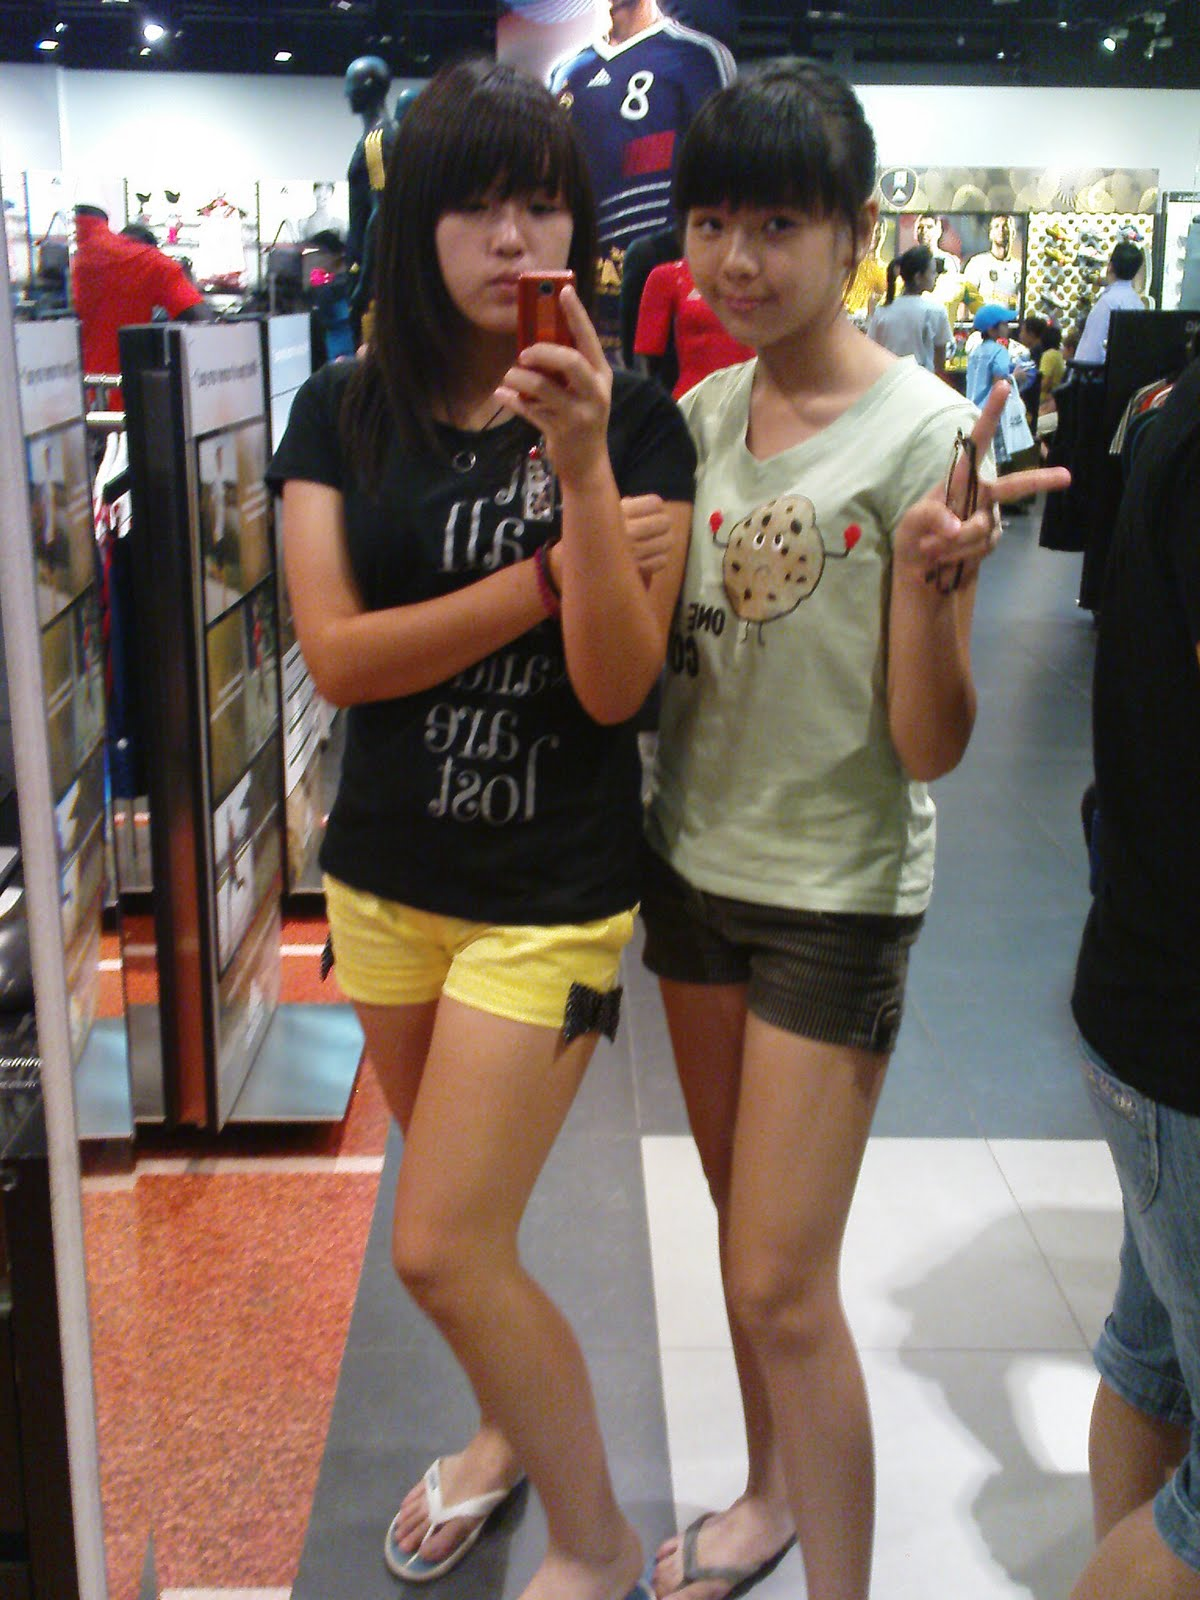 GOH EUNICE: Midvalley with family